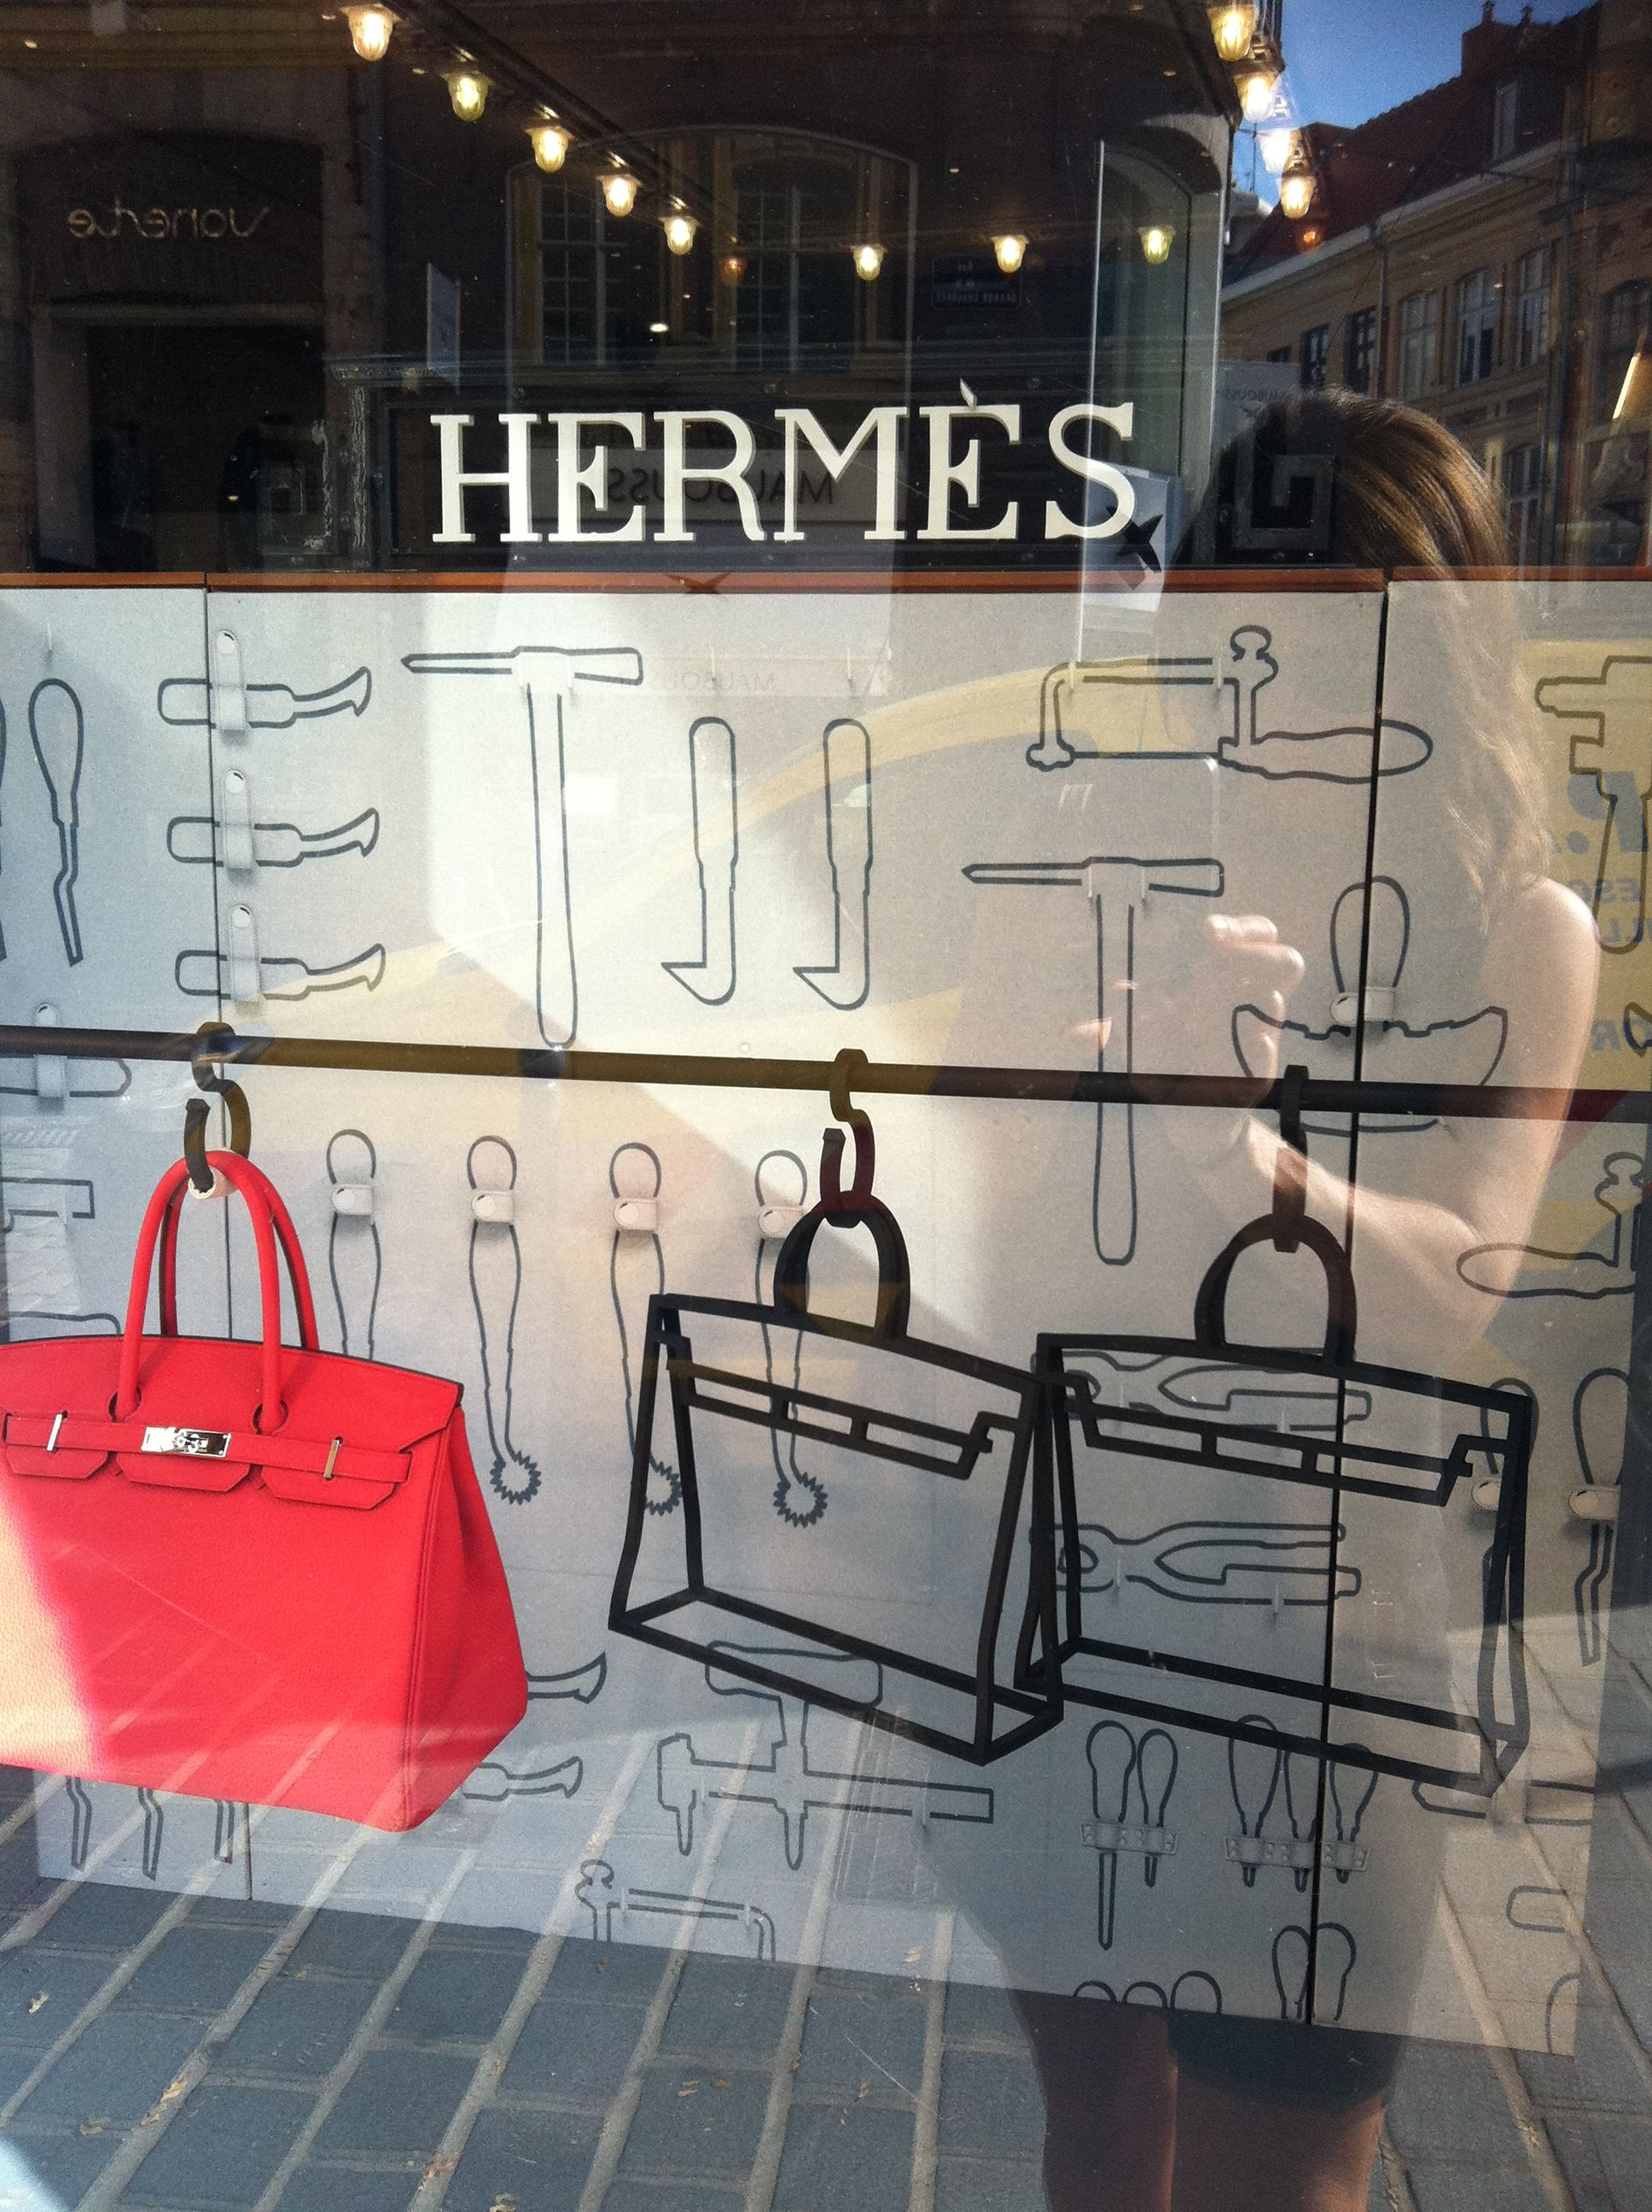 d6353e05ff8 Hermes window.  millinery  judithm  windowdisplay Try this with a hat and  sketches of a hat. Along with sketches of hatmaking tools on the background.